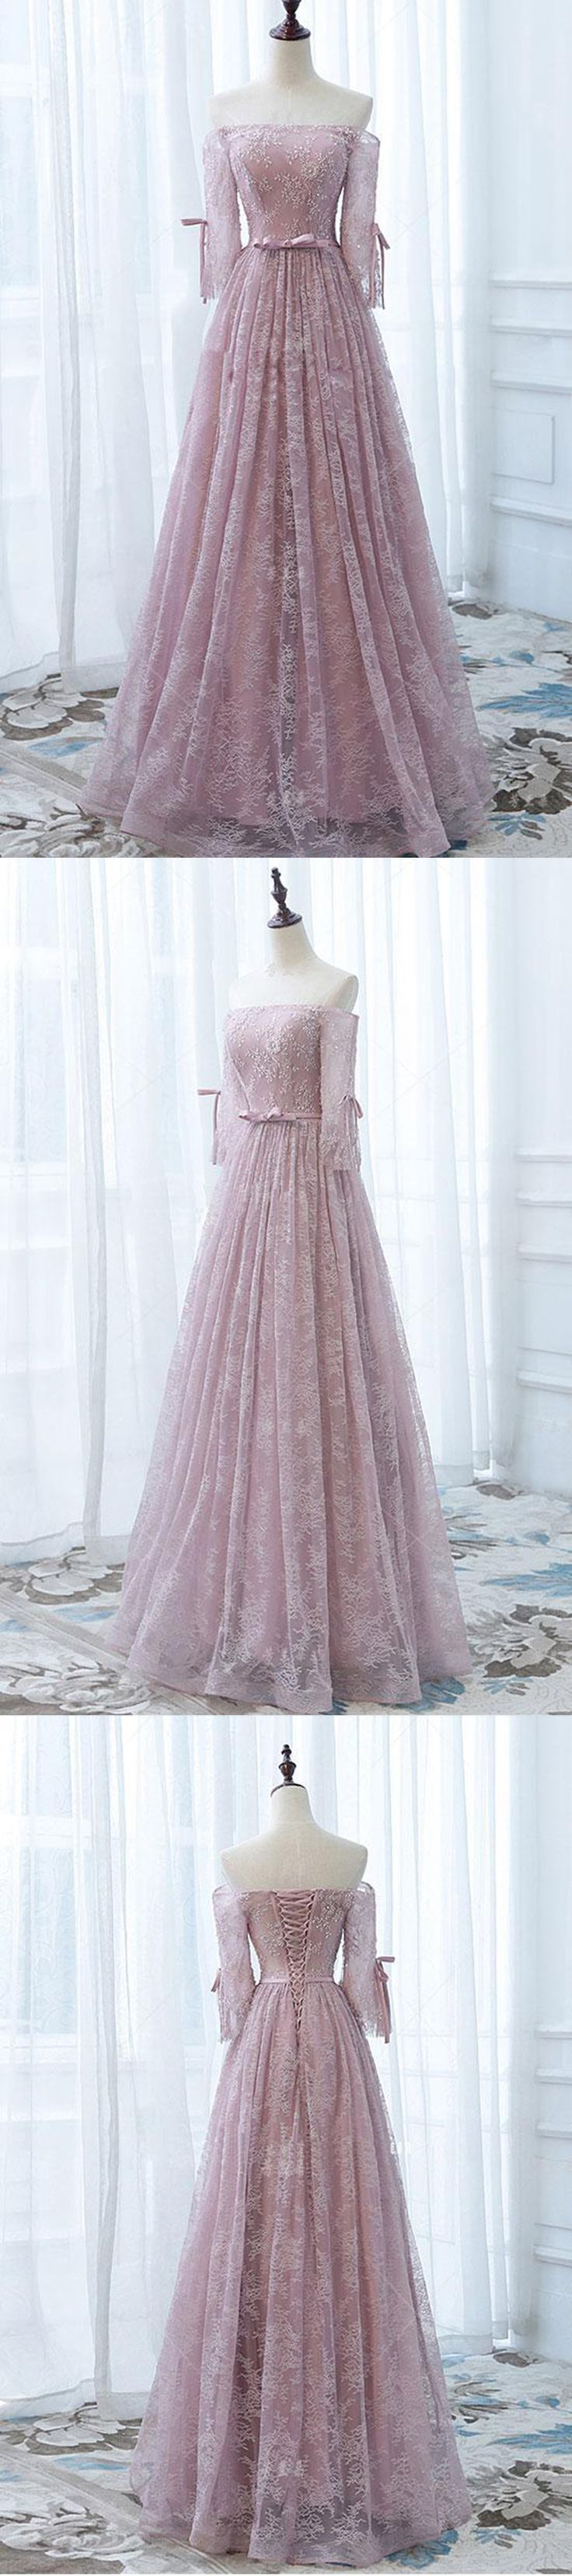 Pink lace strapless long A-line sweet16 prom dress with sleeves